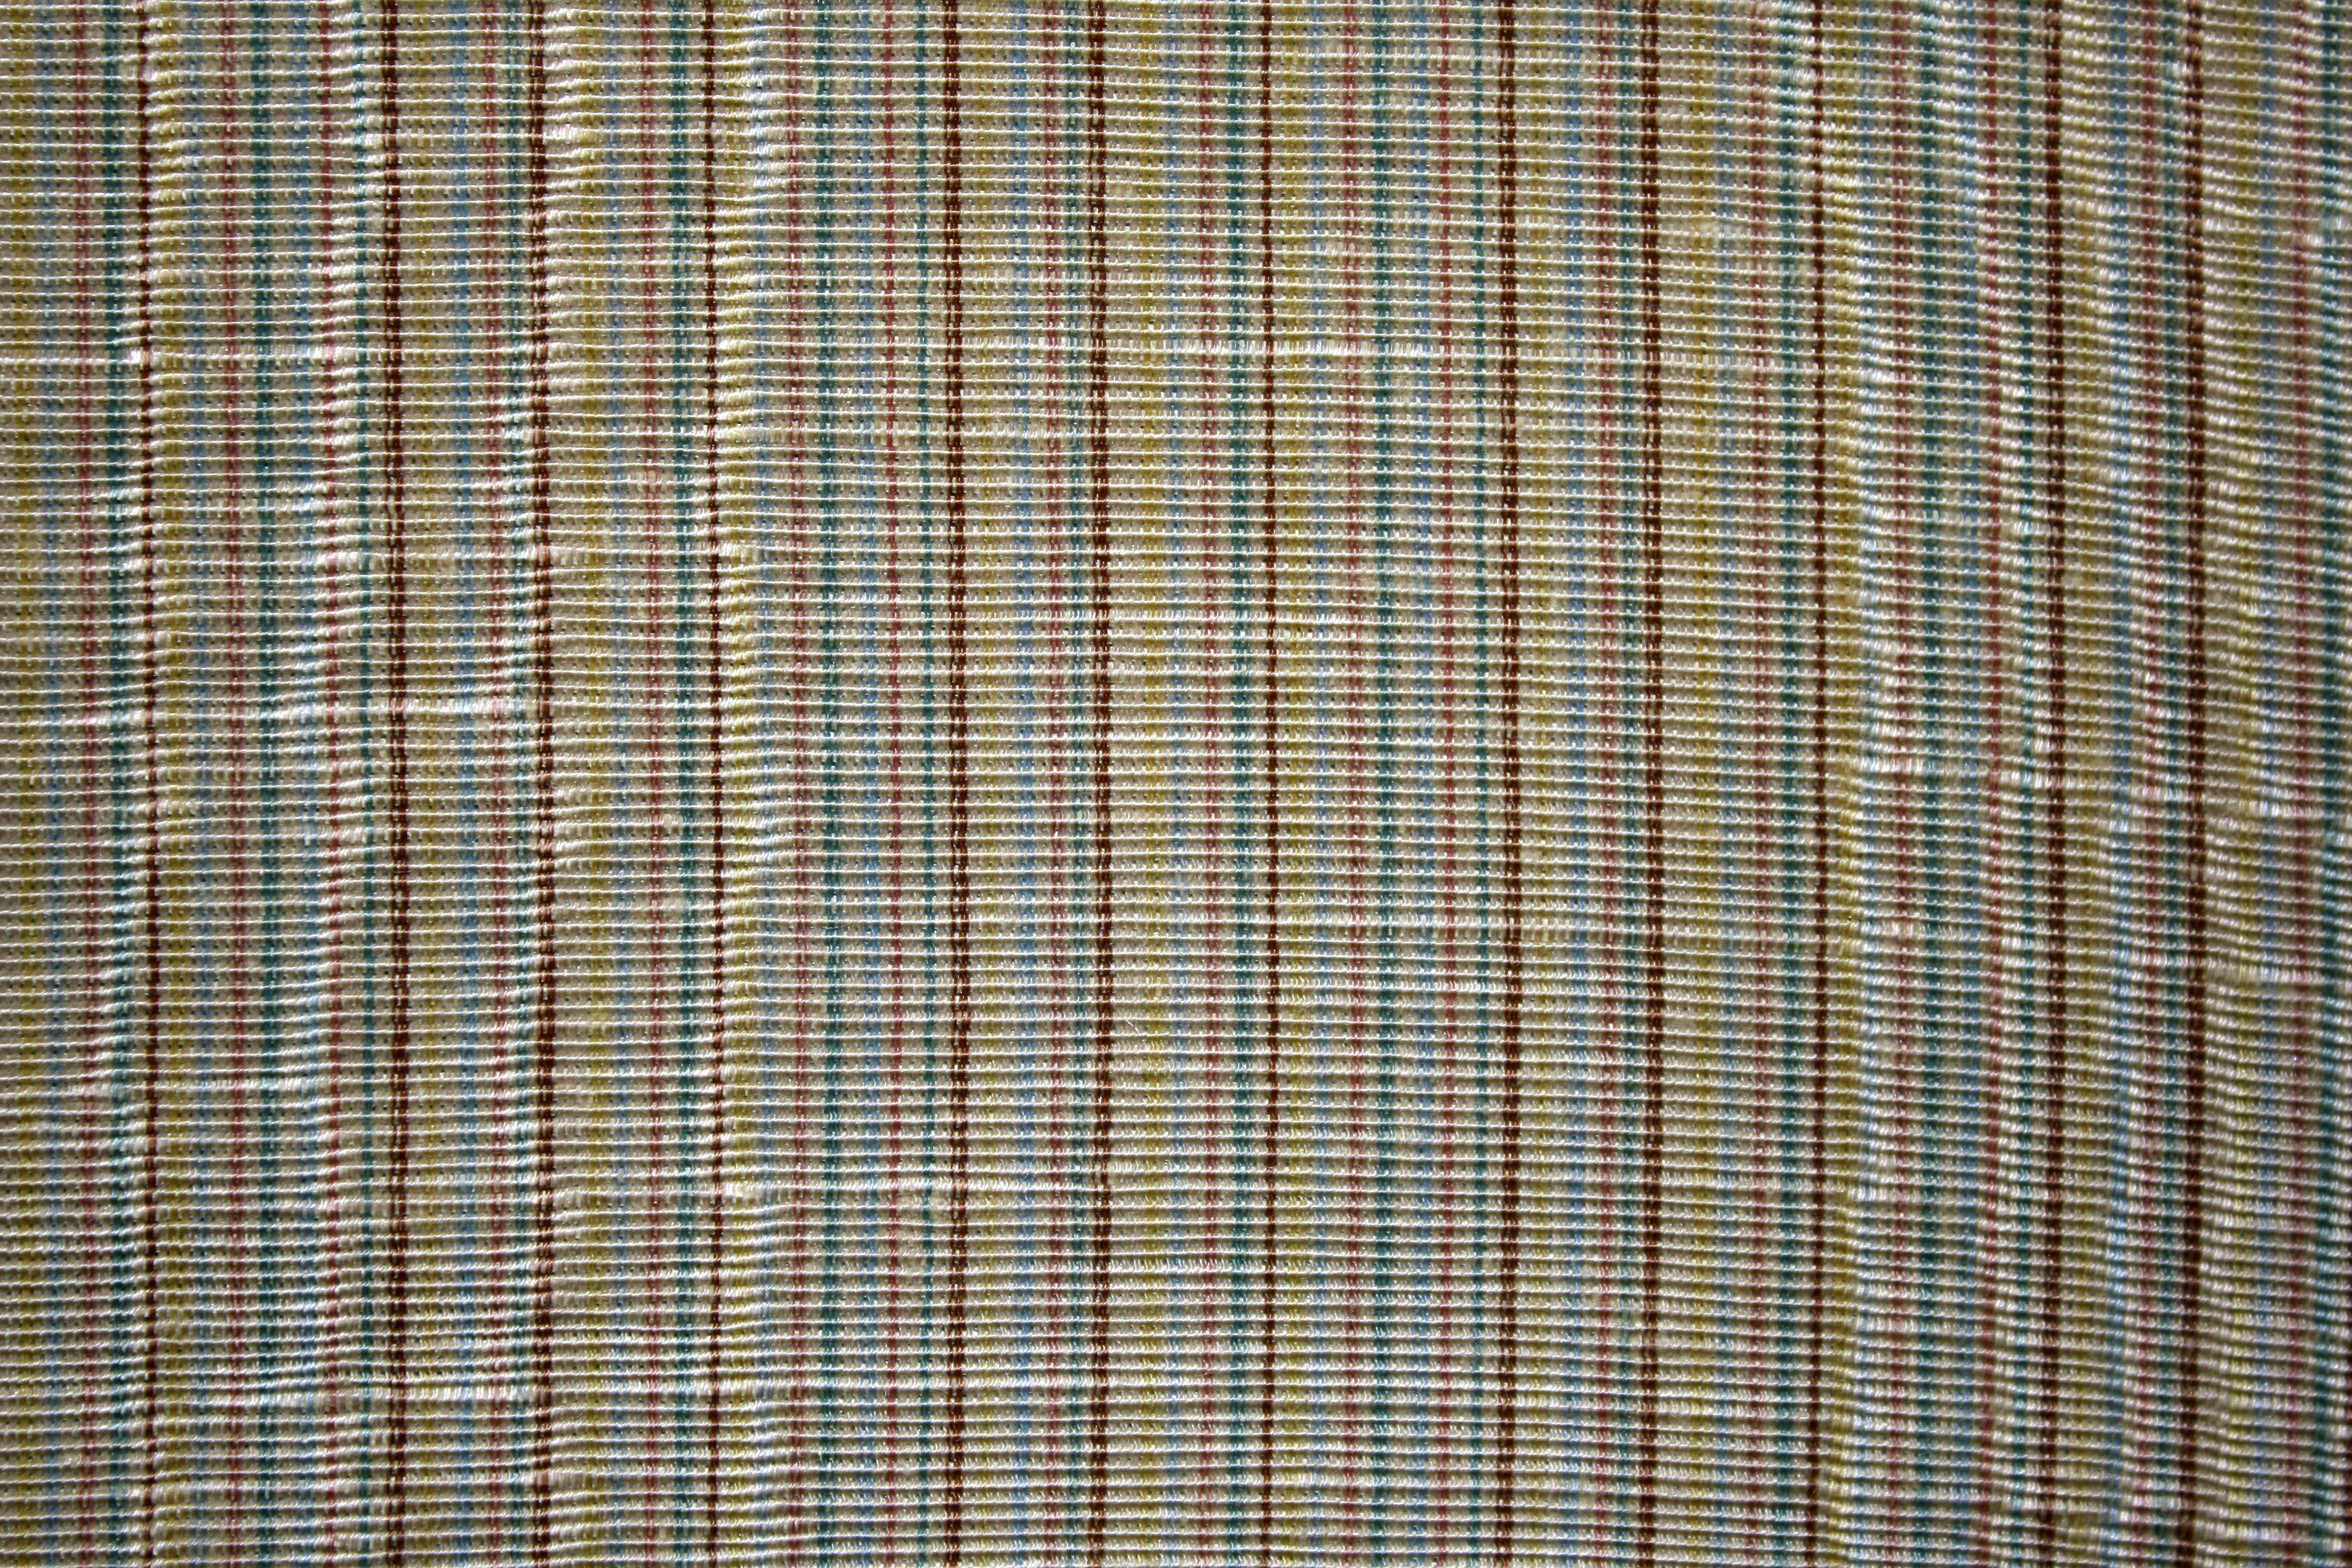 Brown and Blue Striped Upholstery Fabric Texture Picture | Free ...